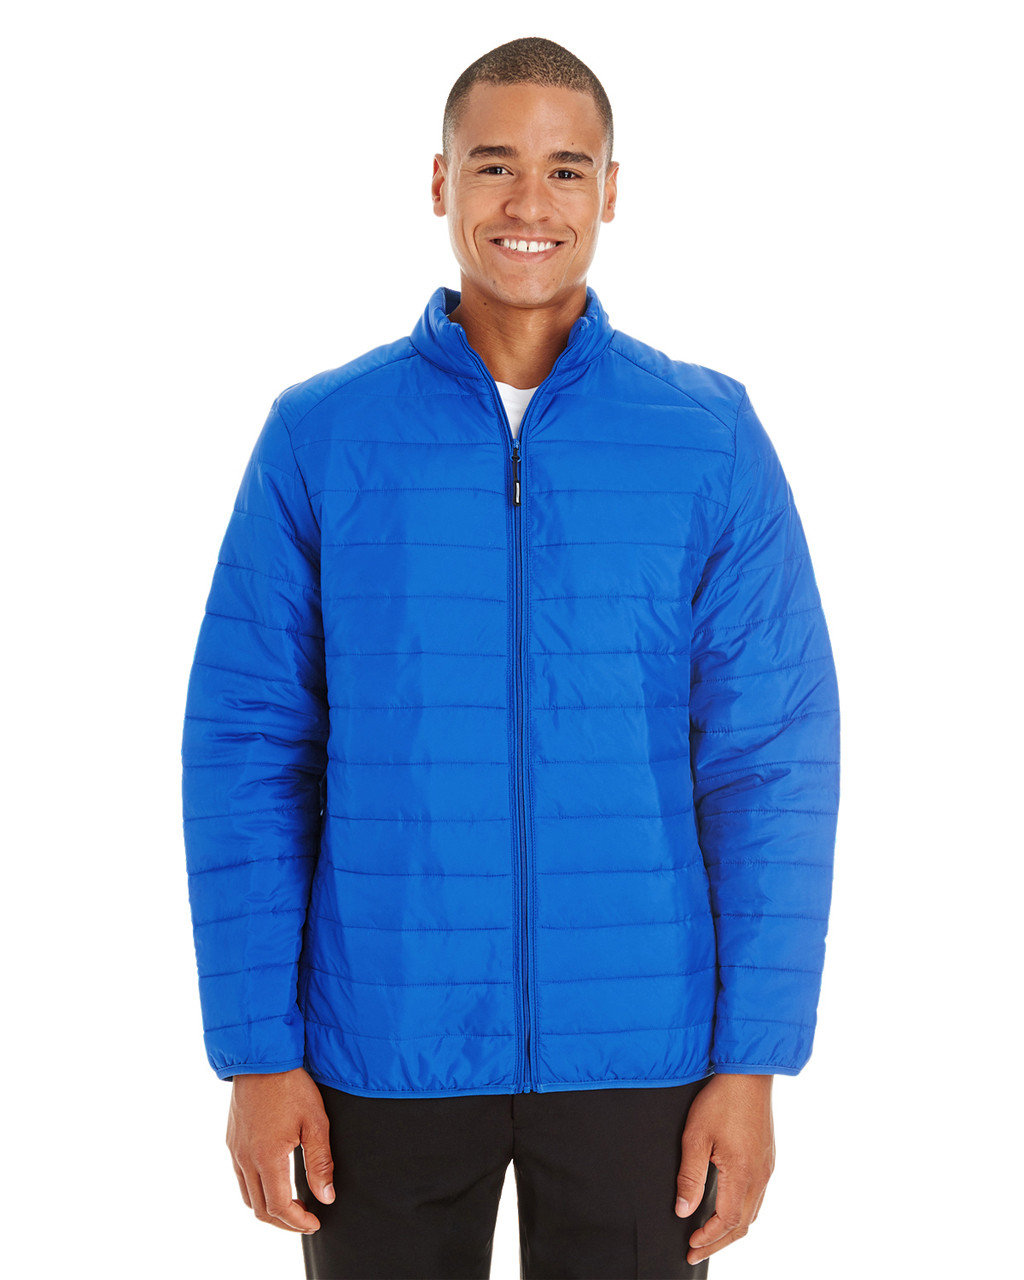 True Royal - CE700 Ash City - Core 365 Men's Prevail Packable Puffer Jacket | Blankclothing.ca